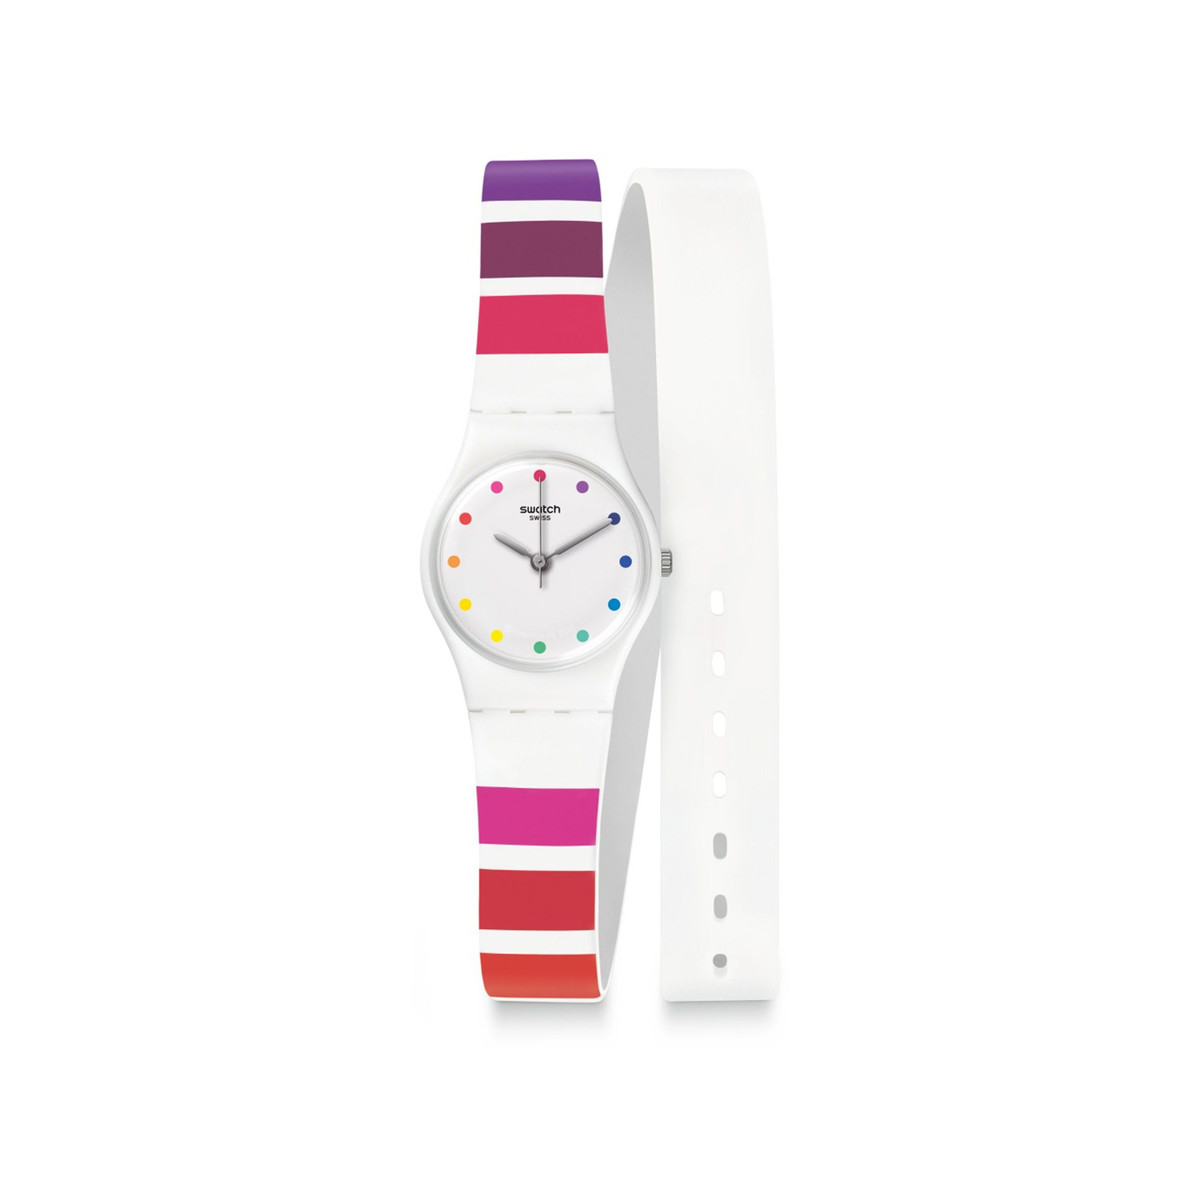 Montre Swatch Colorao femme double tour - vue V1